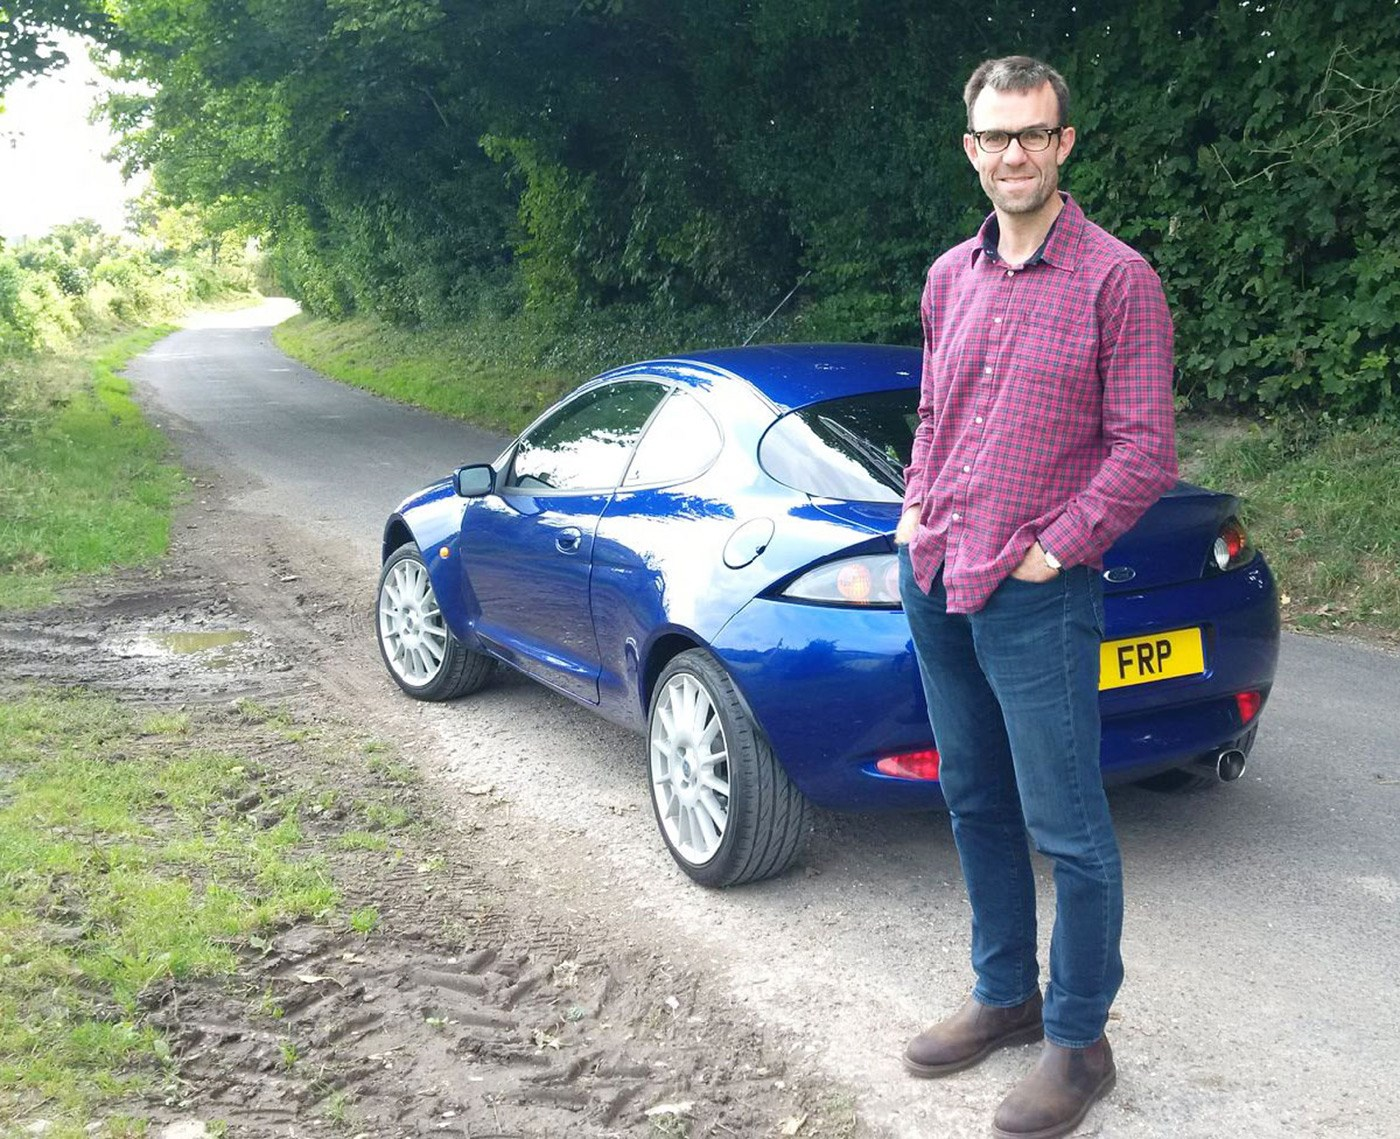 Author Tim Pollard with the Ford Racing Puma - it's the original press test car on the Ford UK heritage fleet